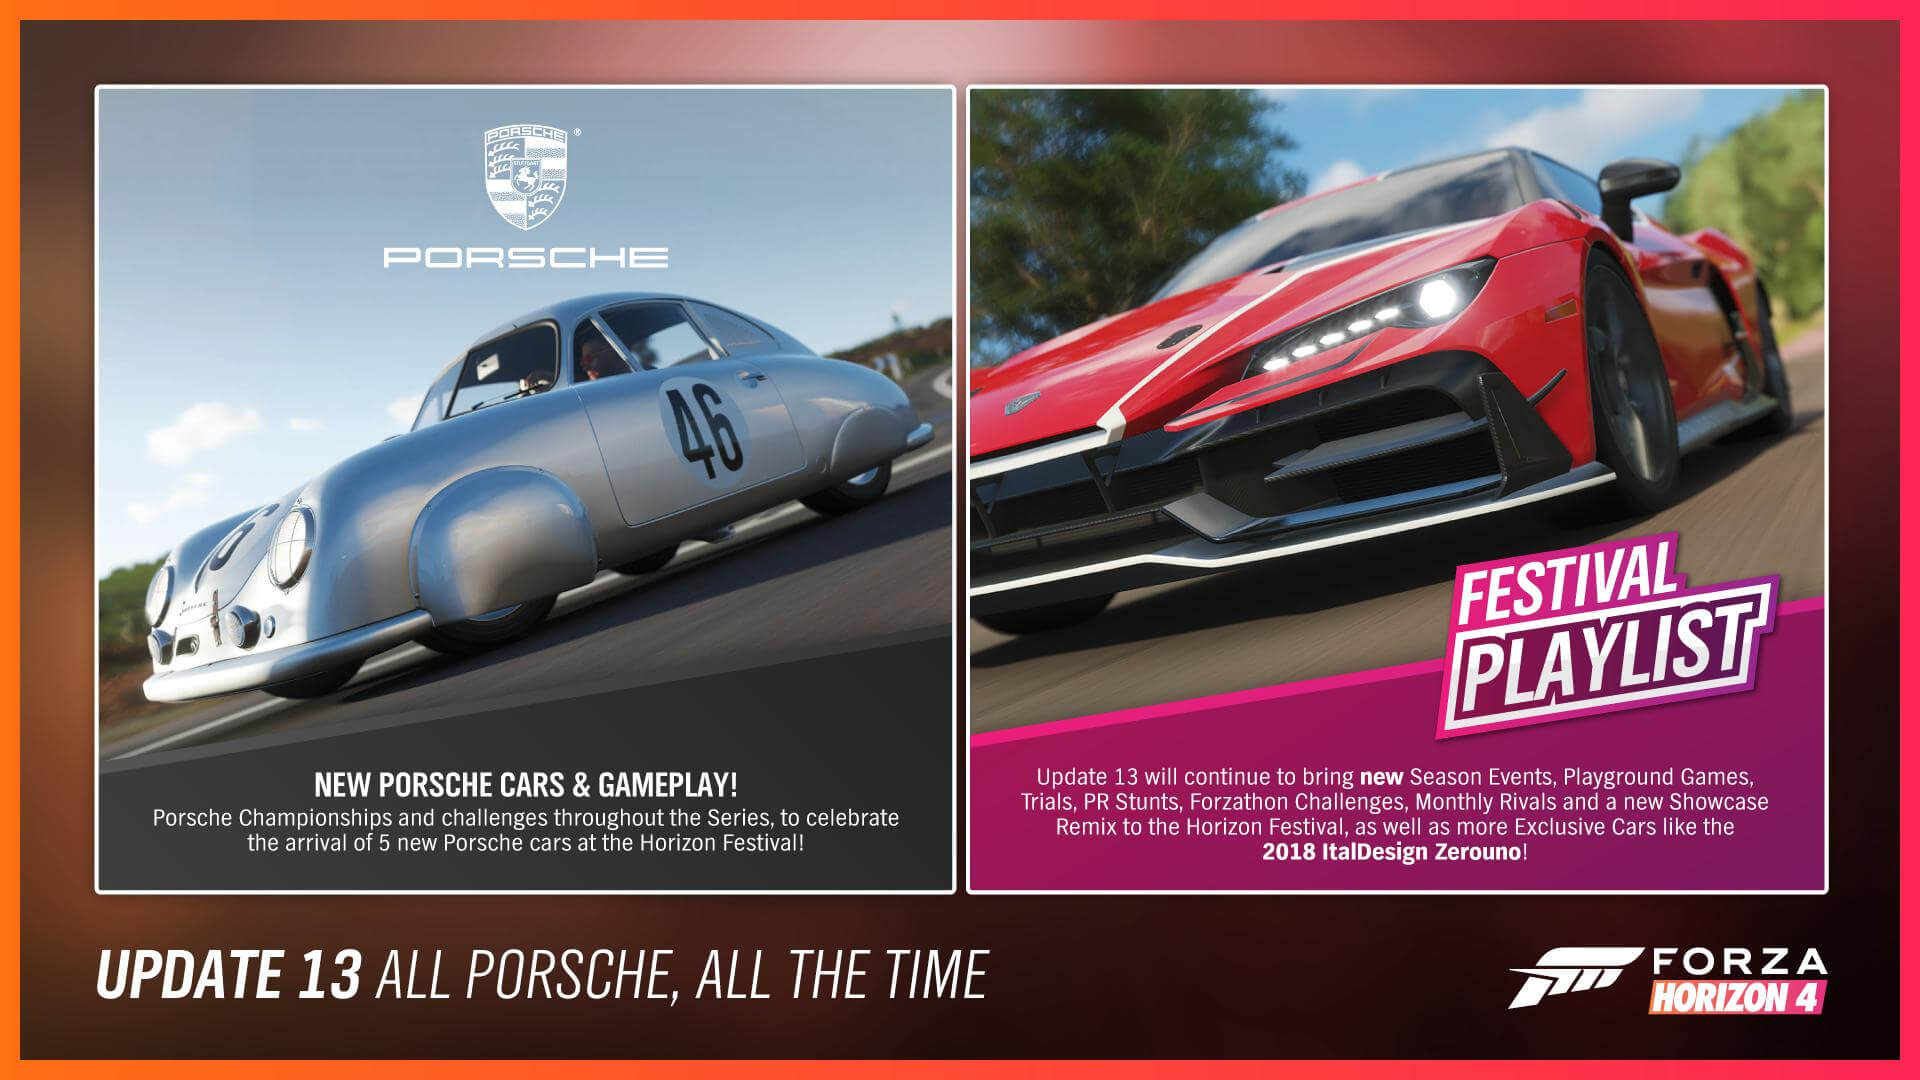 Forza Horizon 4 Series 13 Pays Homage to Porsche